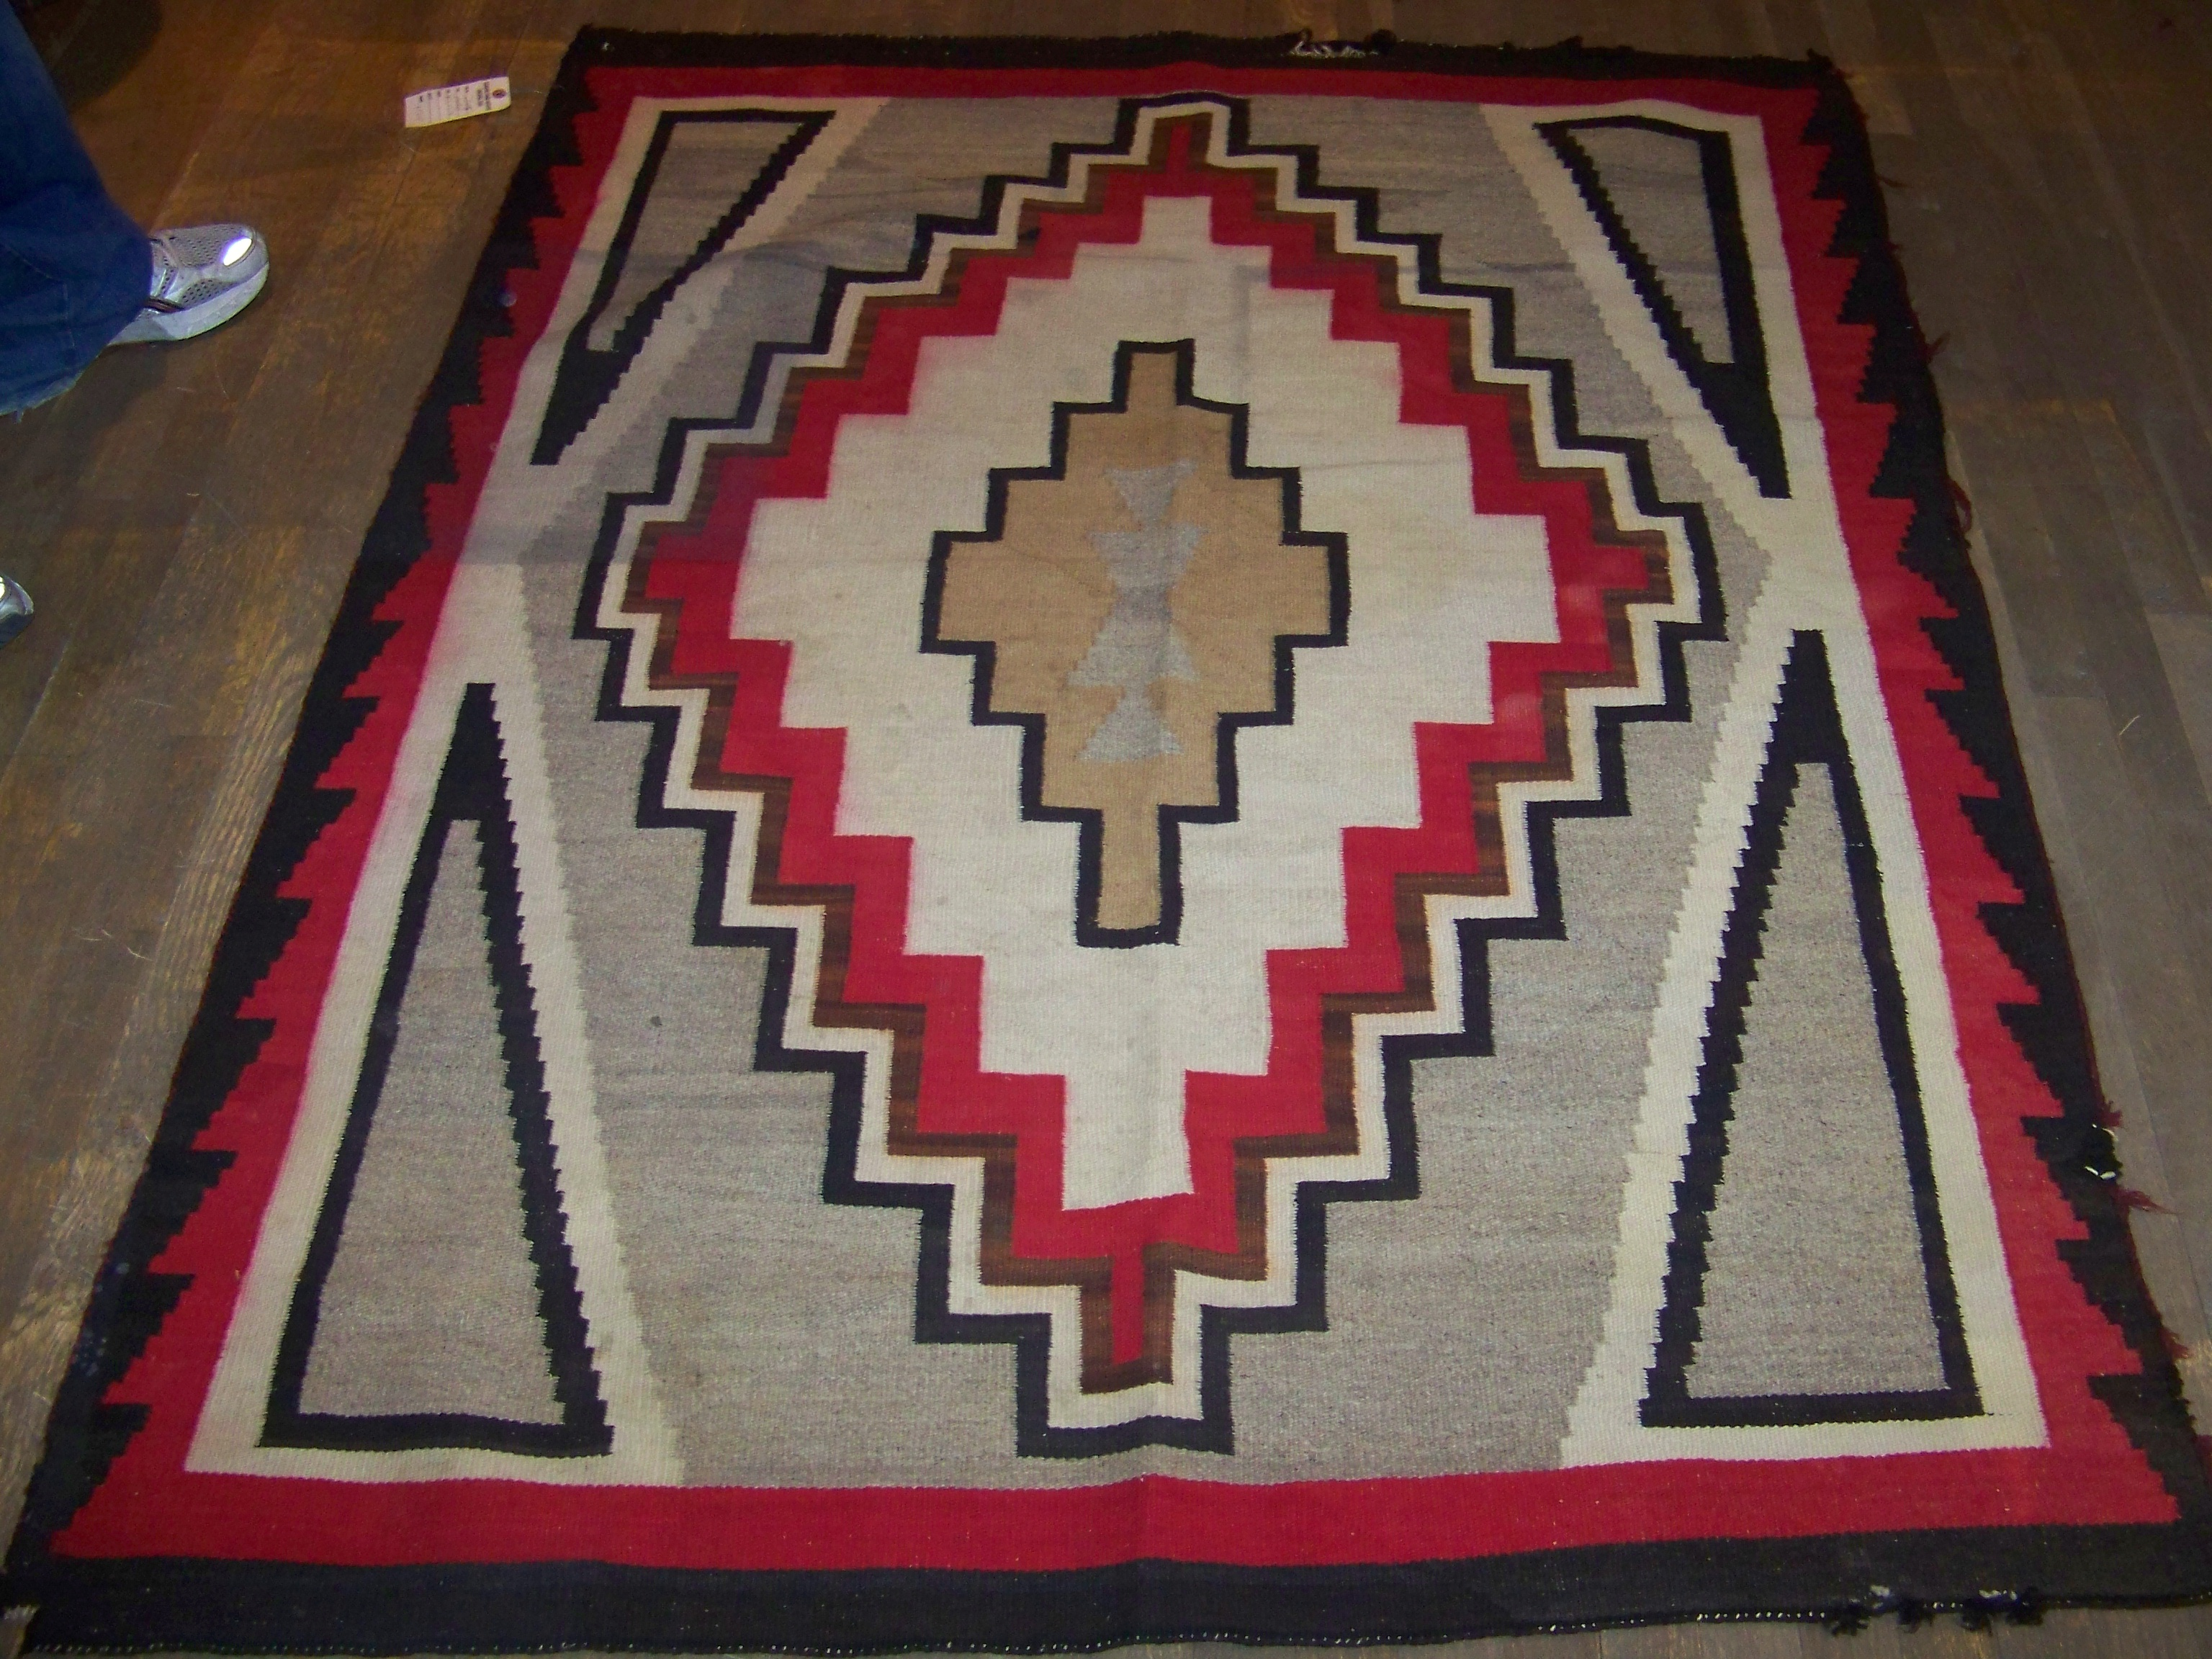 sized new wool for sw textiles large exhibition rugs rug non decorator style room friendly budget navajo